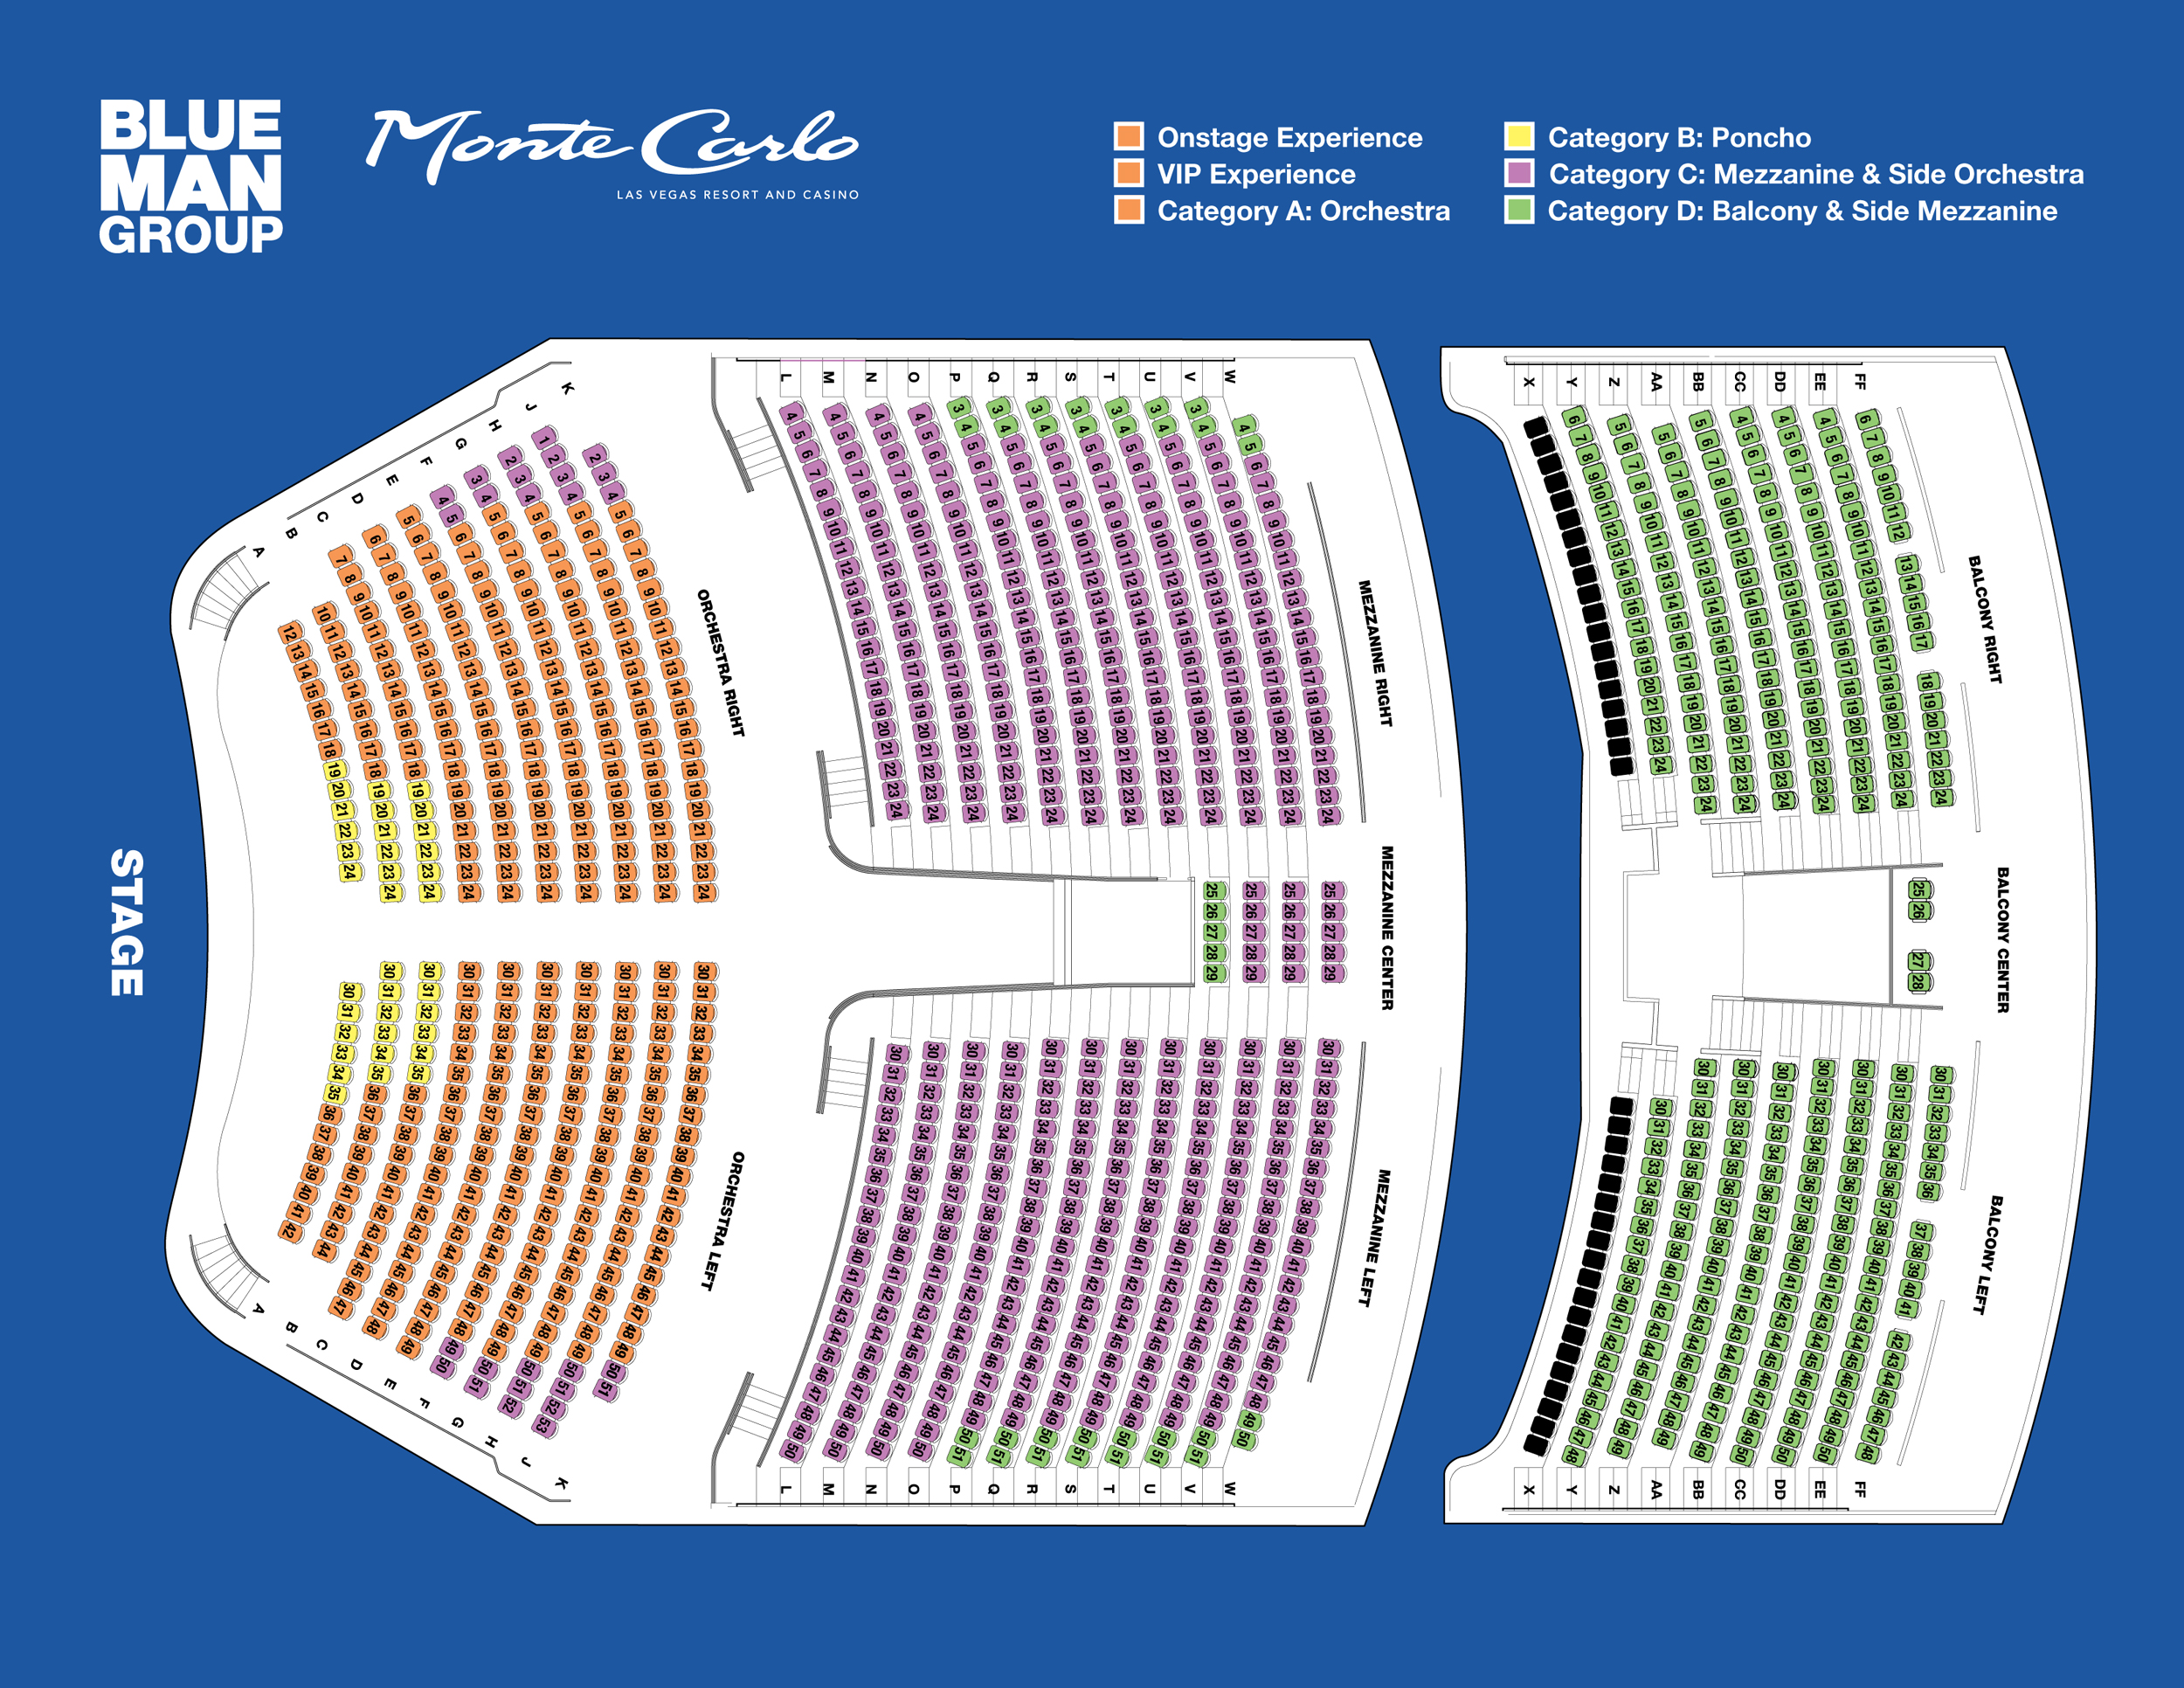 Blue man seating chart also monte carlo las vegas resort and casino tickets rh goldstar